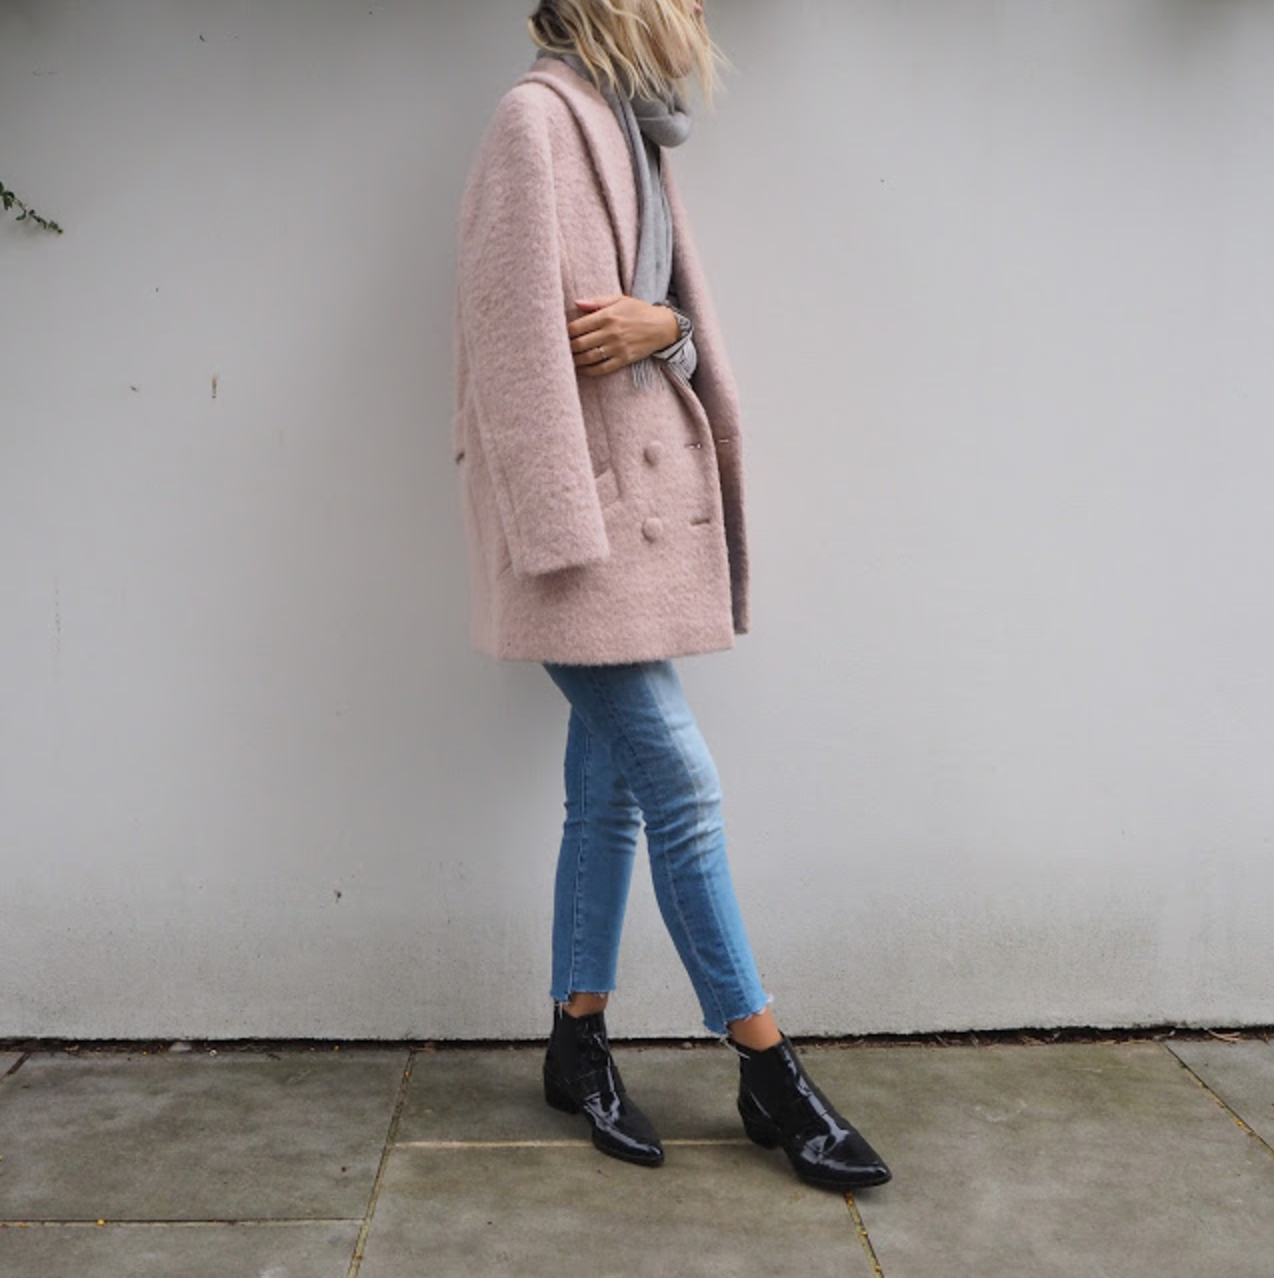 The Frugality   is wearing the coat in Rose